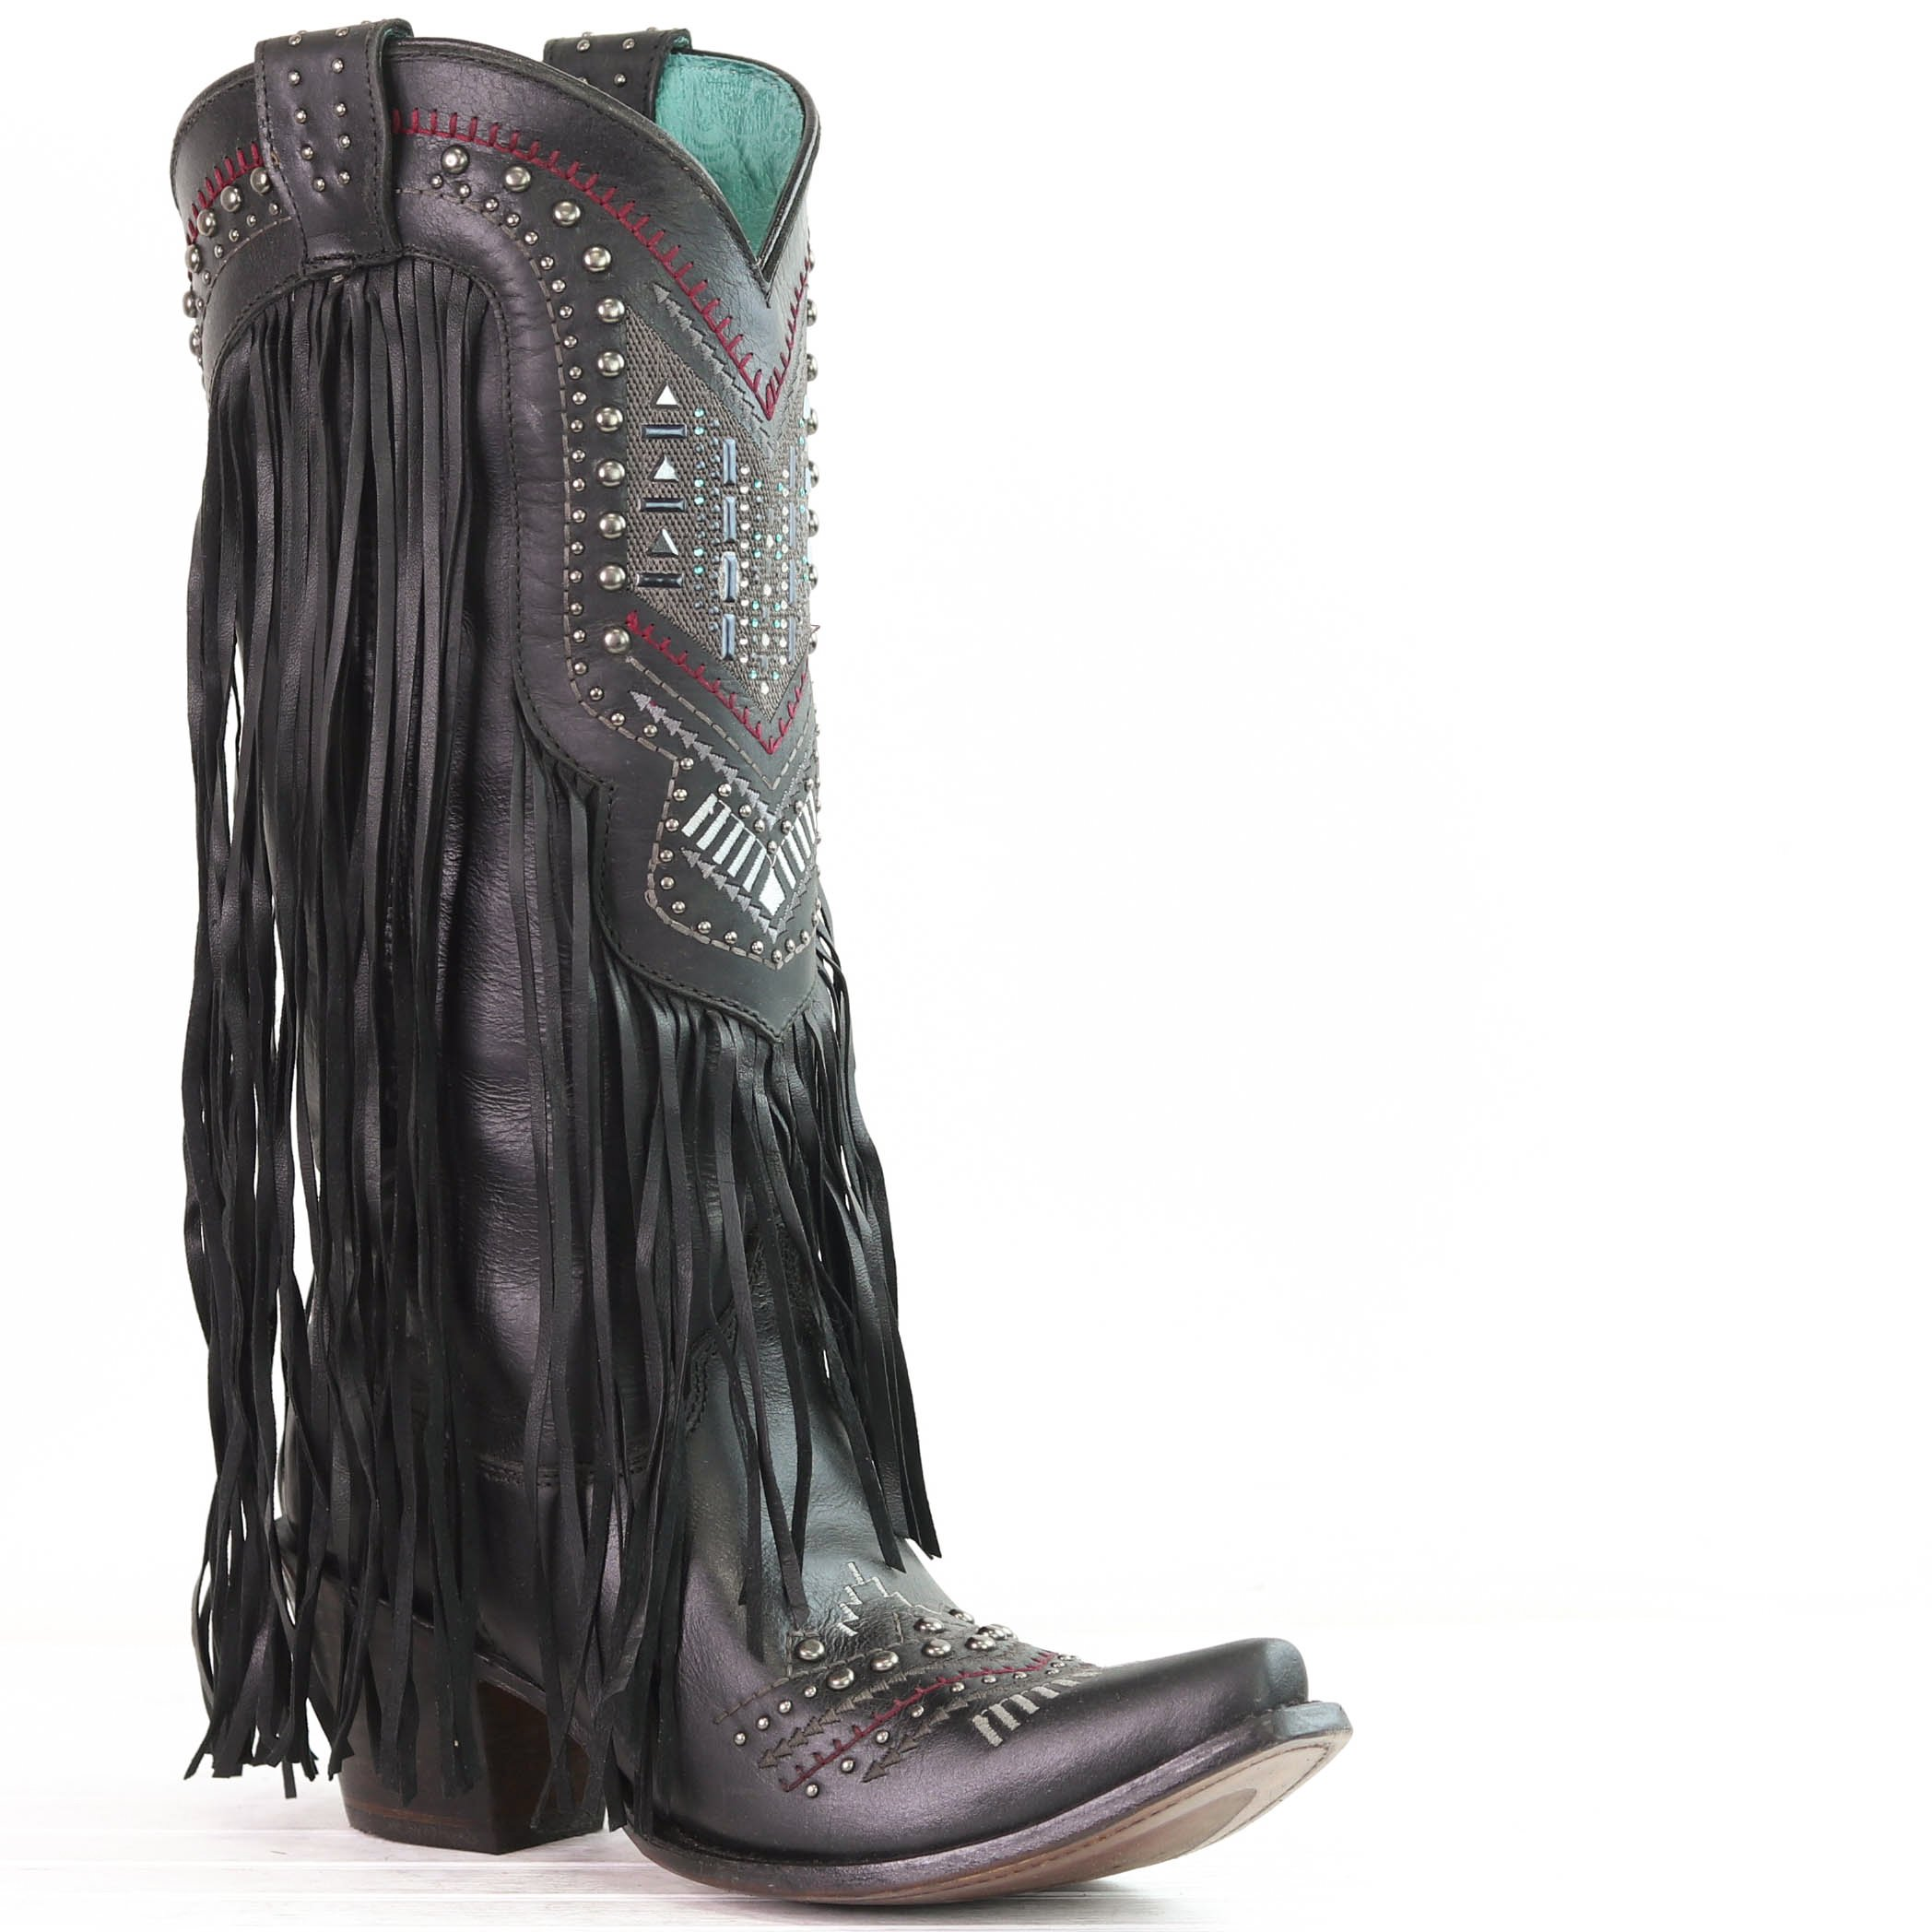 b2f9a21d650 Black Swarovski Crystal and Fringe Boot | Boots, boots and shoes ...